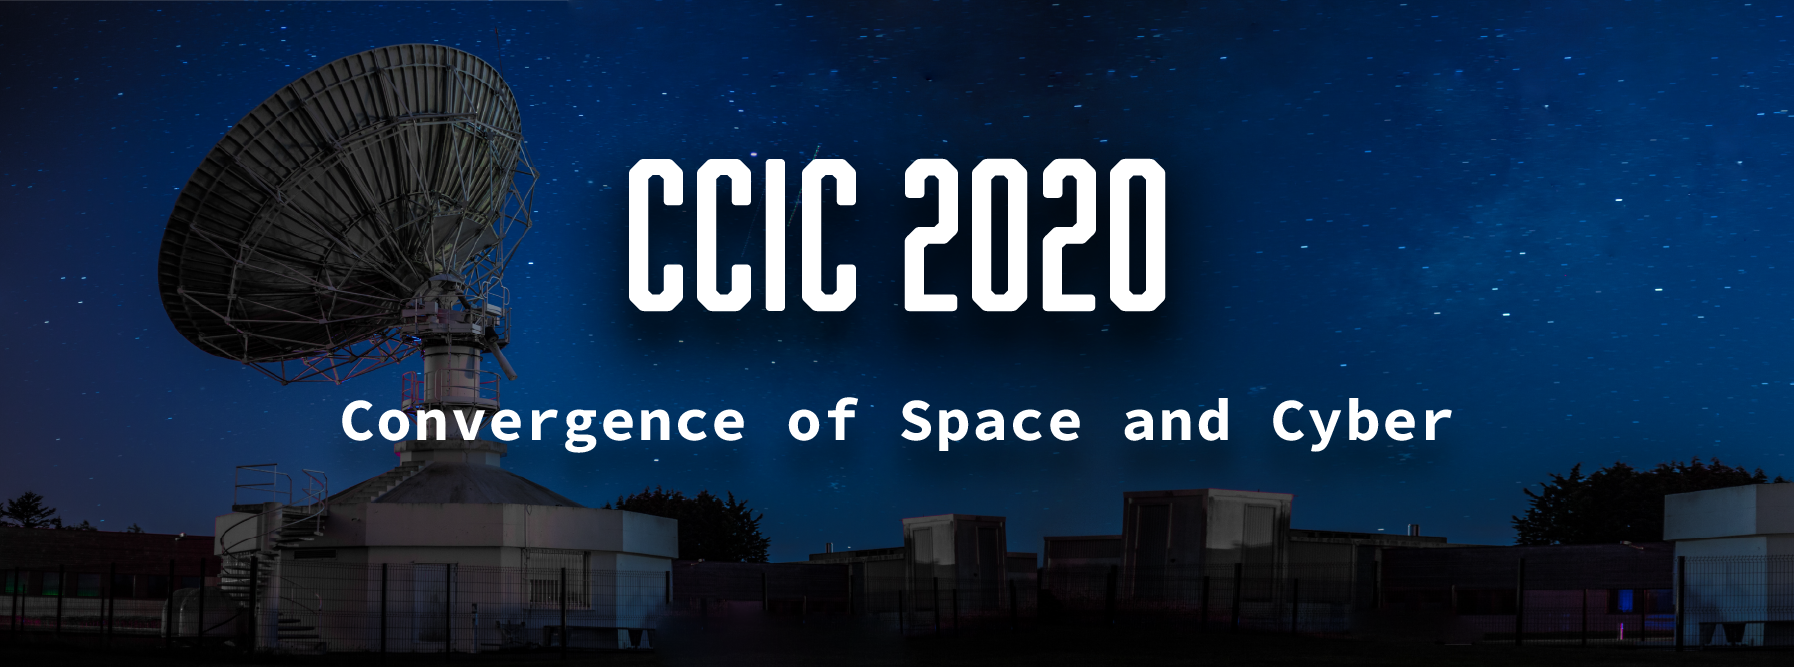 CCIC 2020 — Convergence of Space and Cyber — June 16th–28th, 2020.